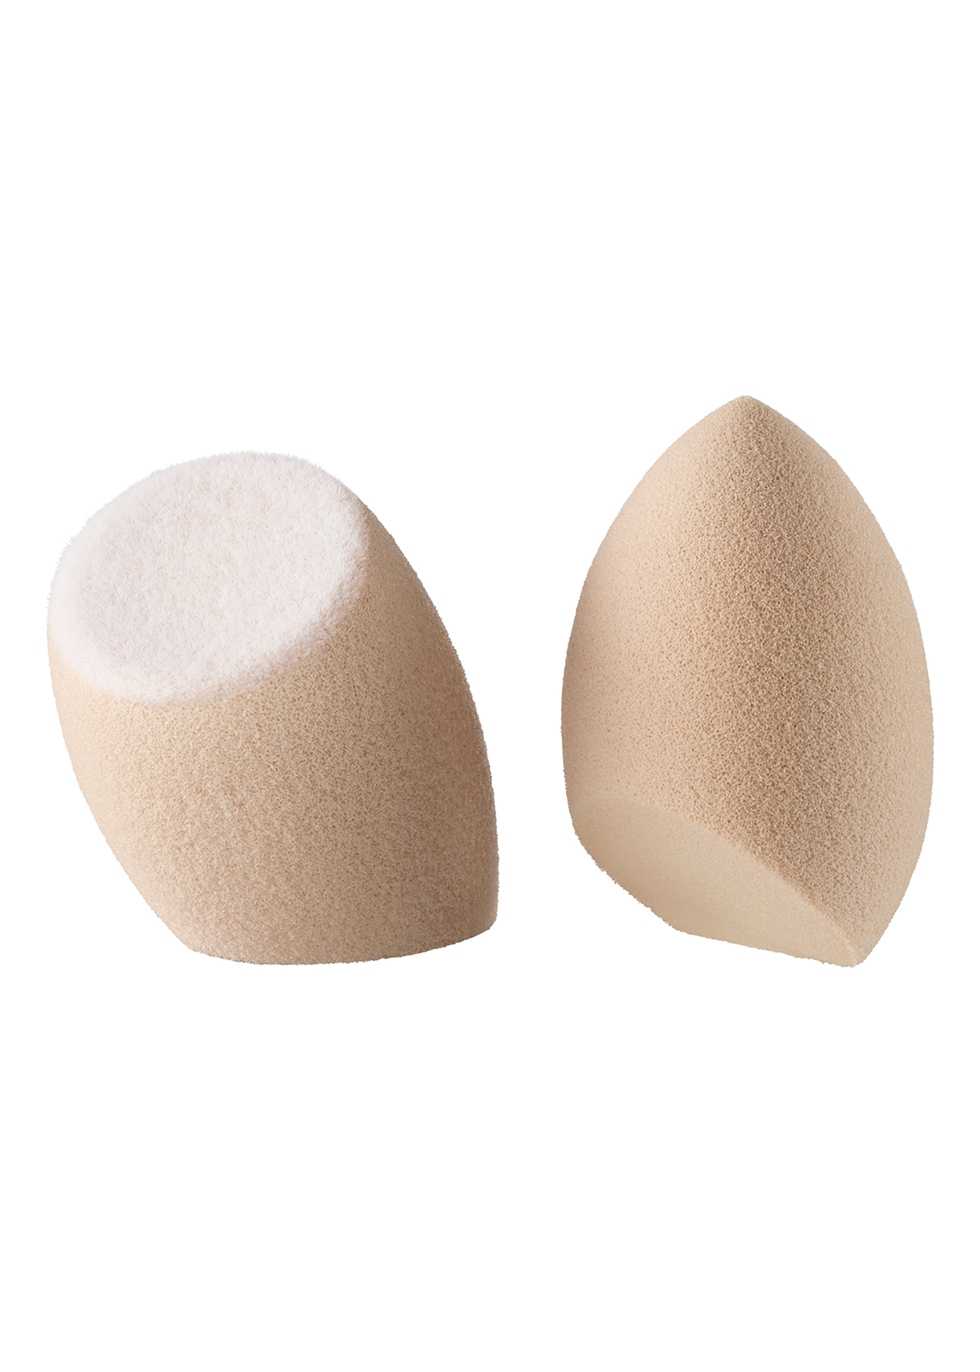 Lil Precision Makeup Sponge Duo 105